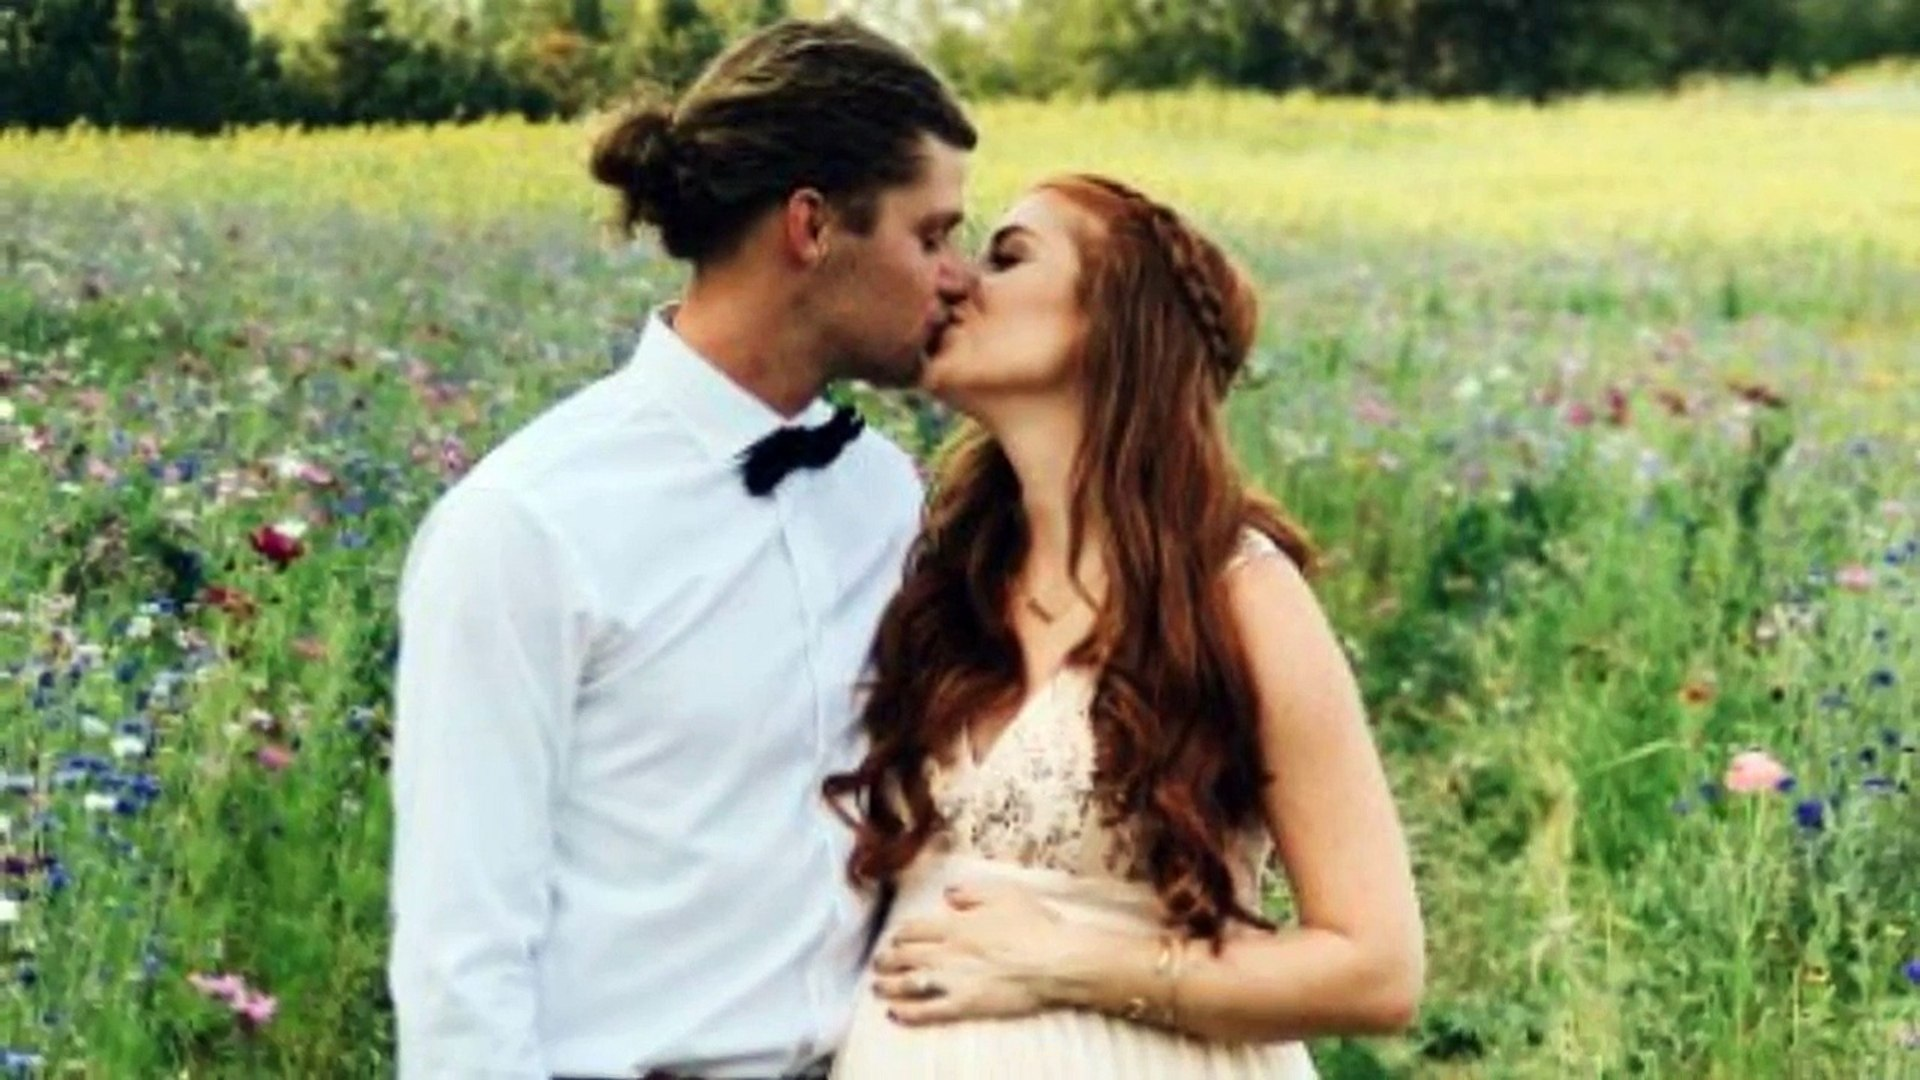 AUDREY AND JEREMY ROLOFF FACE 'DILEMMA' WITH BABY EMBER JEAN